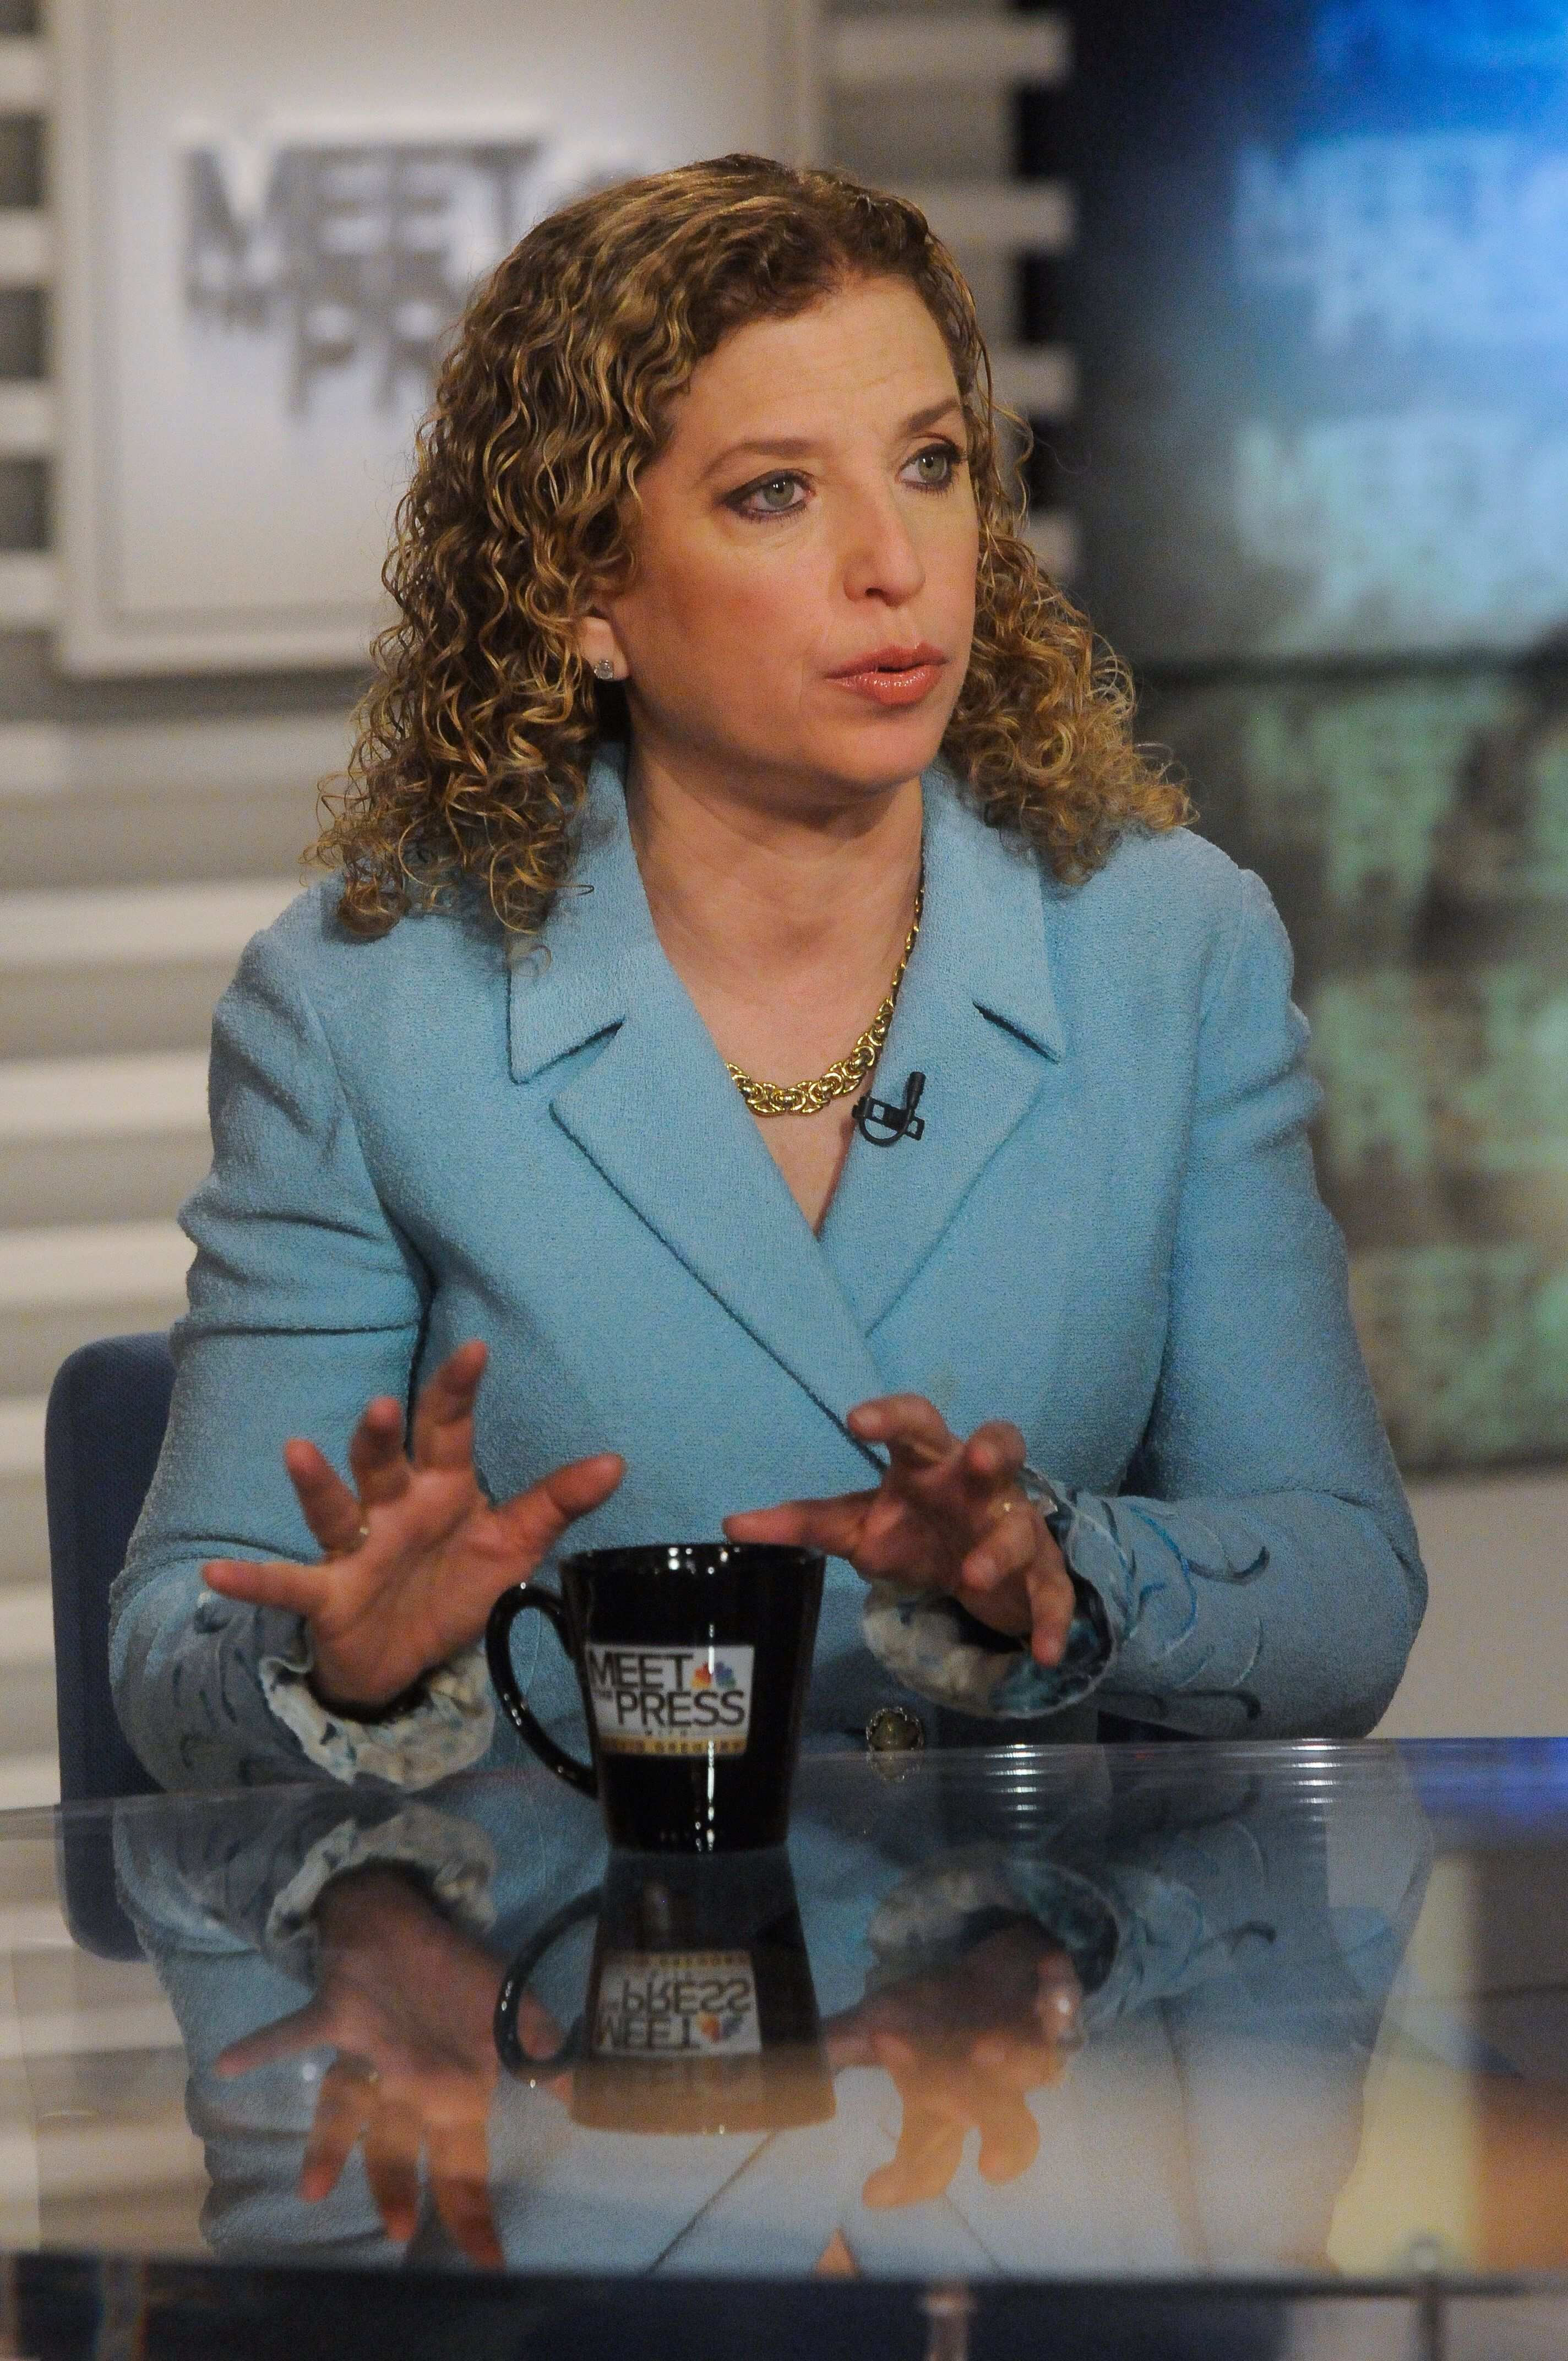 MEET THE PRESS -- Pictured: (l-r)  Rep. Debbie Wasserman Schultz (D-FL) Chair, Democratic National Committee, appears on 'Meet the Press' in Washington, D.C., Sunday Dec. 27, 2015.  (Photo by: William B. Plowman/NBC/NBC NewsWire via Getty Images)